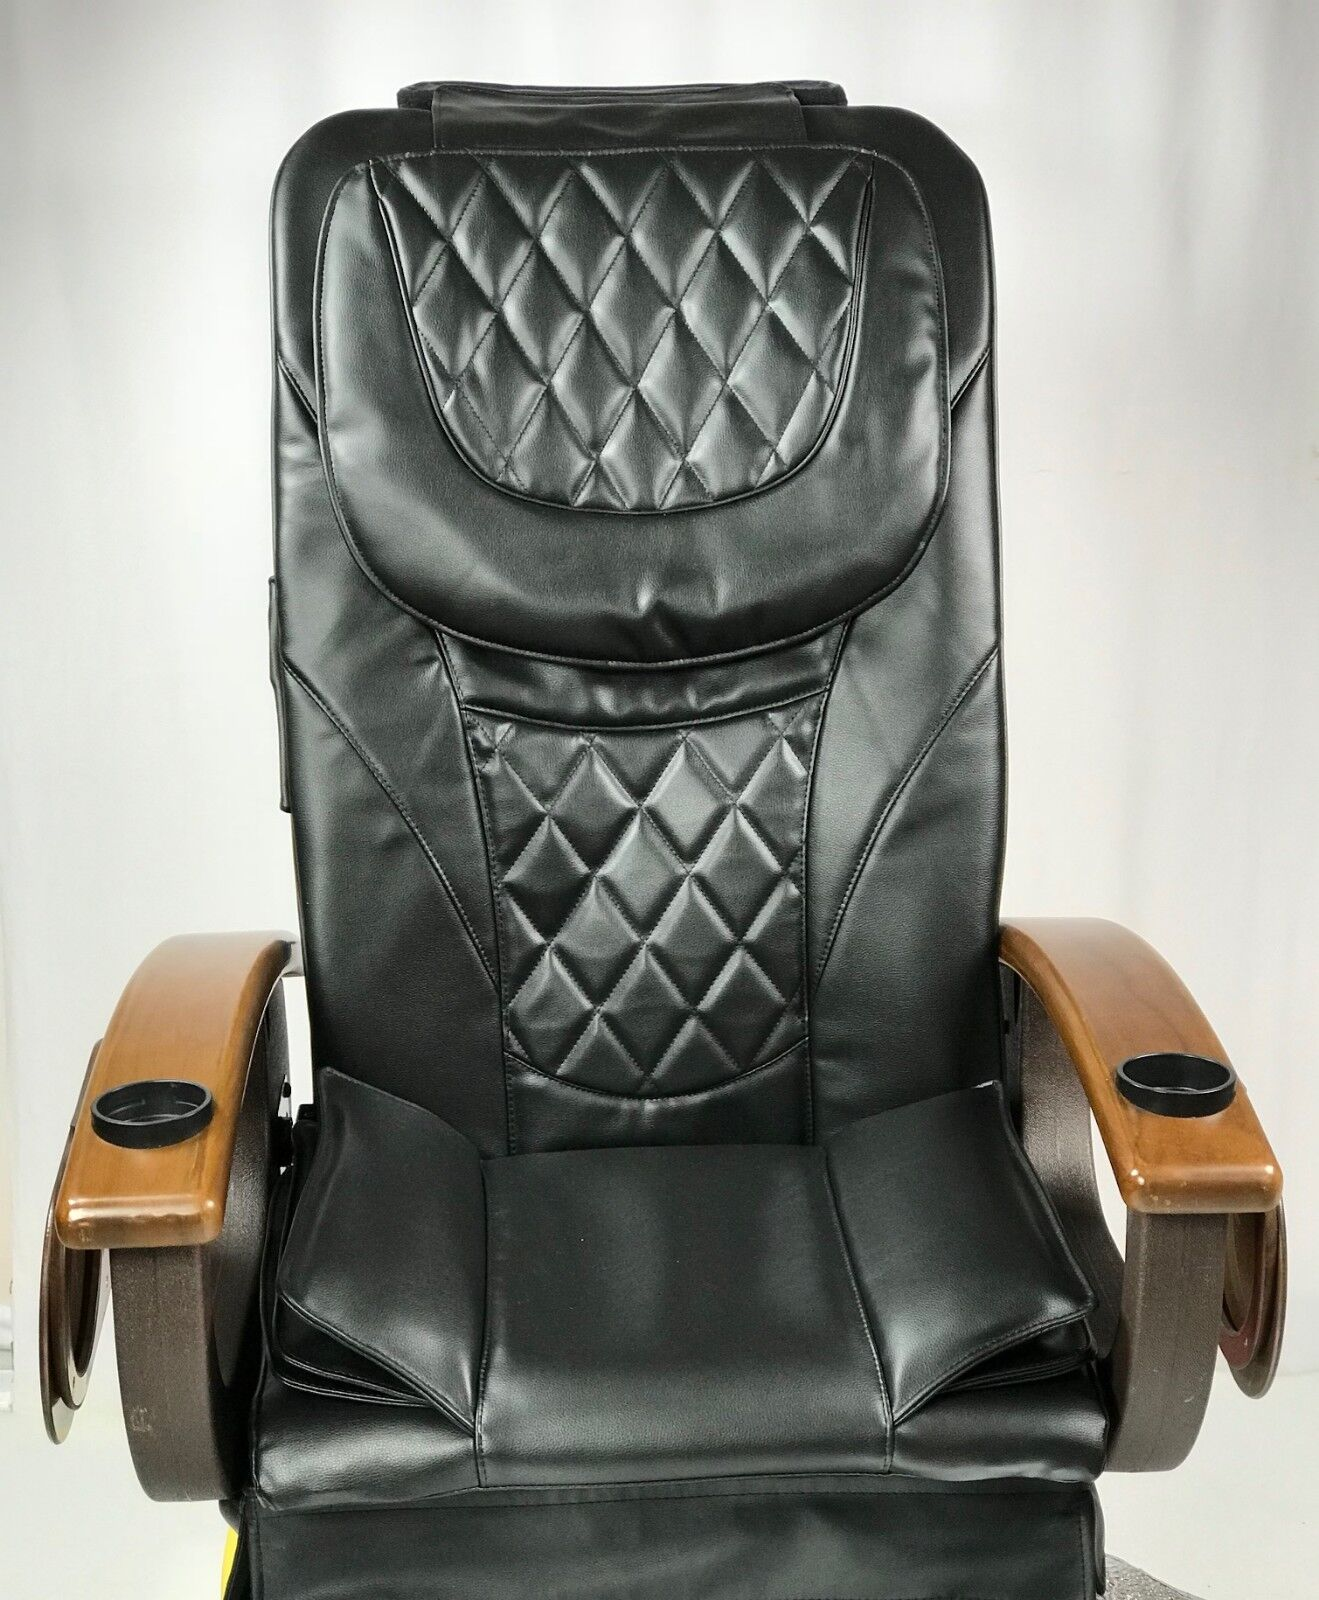 Pedicure chair Massage Seat Cover Cushion Upholstery Salon S